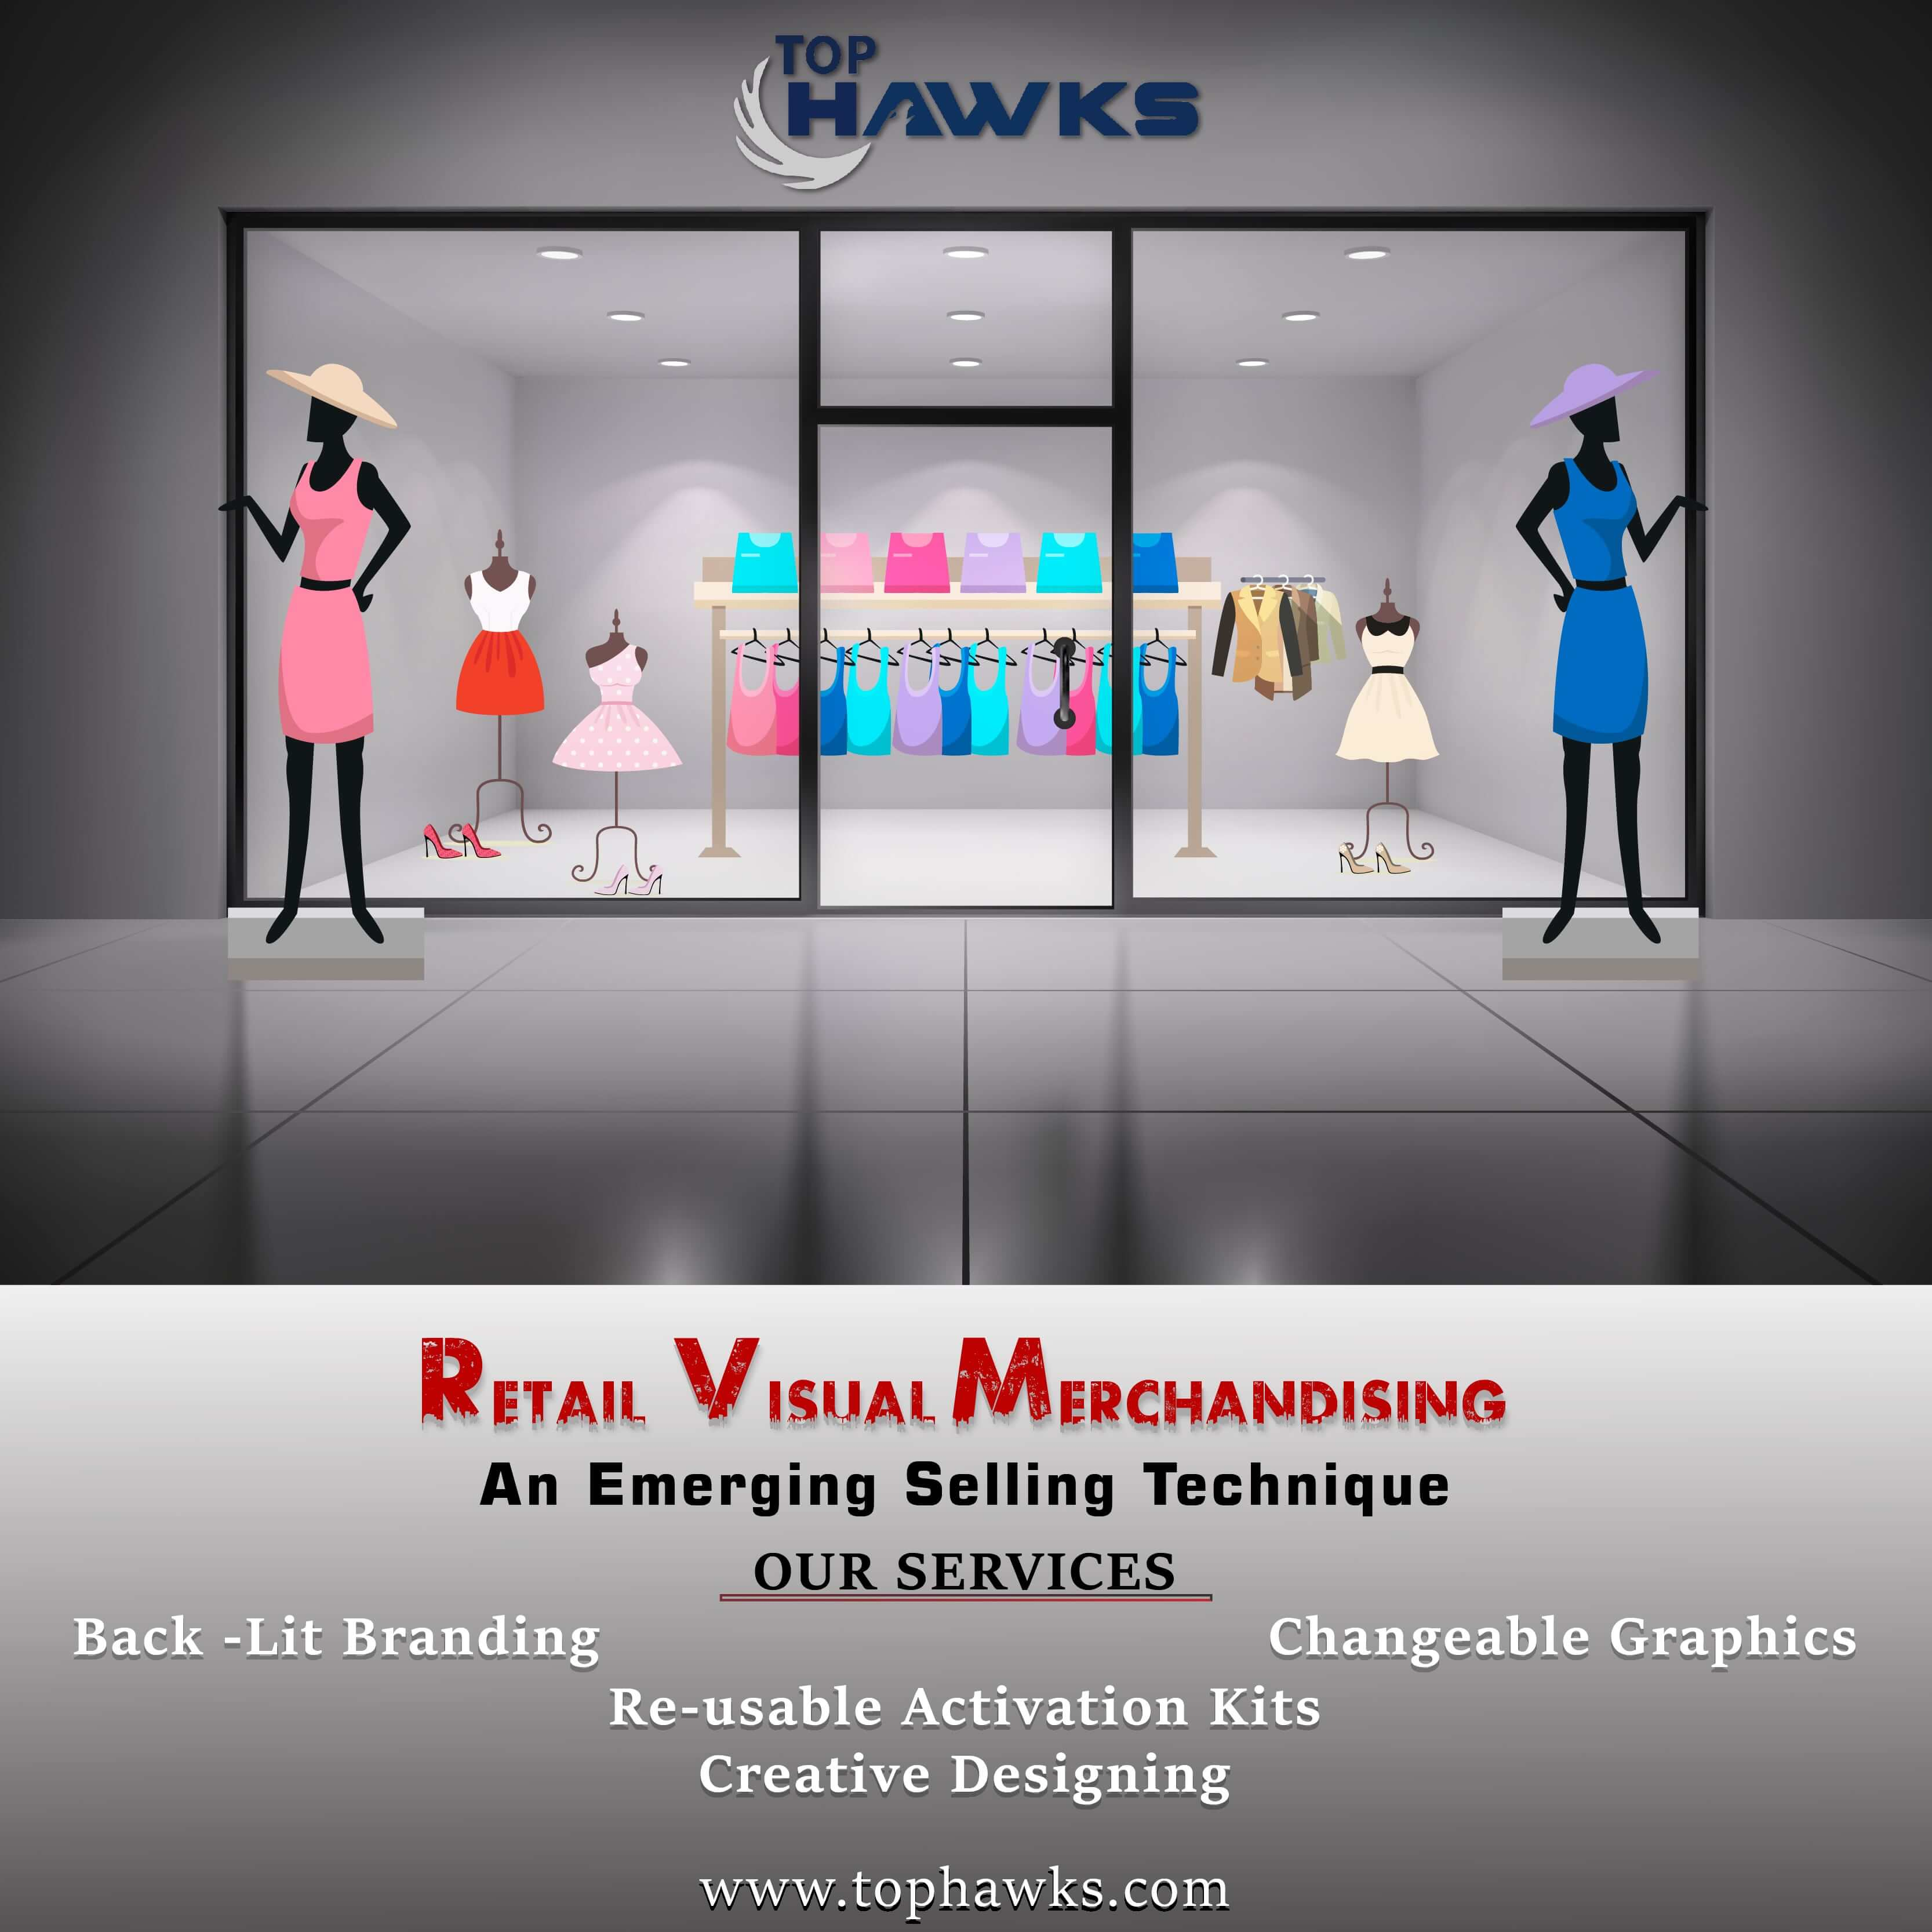 The importance of retail visual merchandising